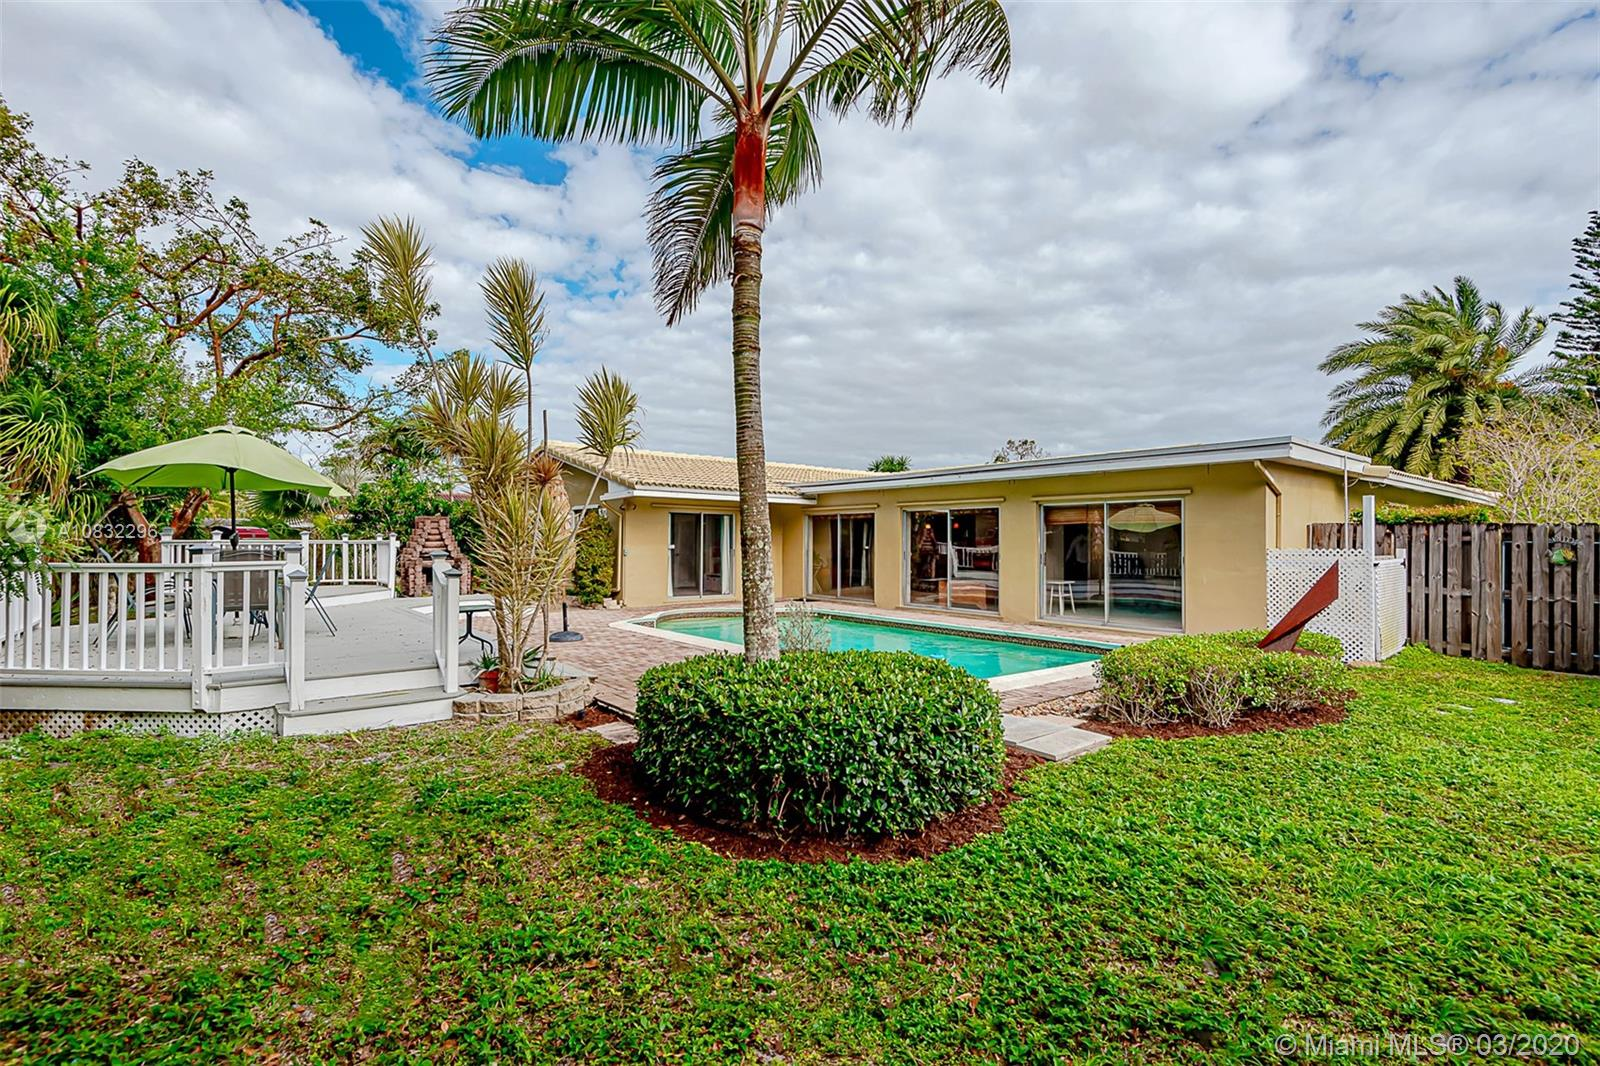 10610 NW 43rd St, Coral Springs, FL 33065